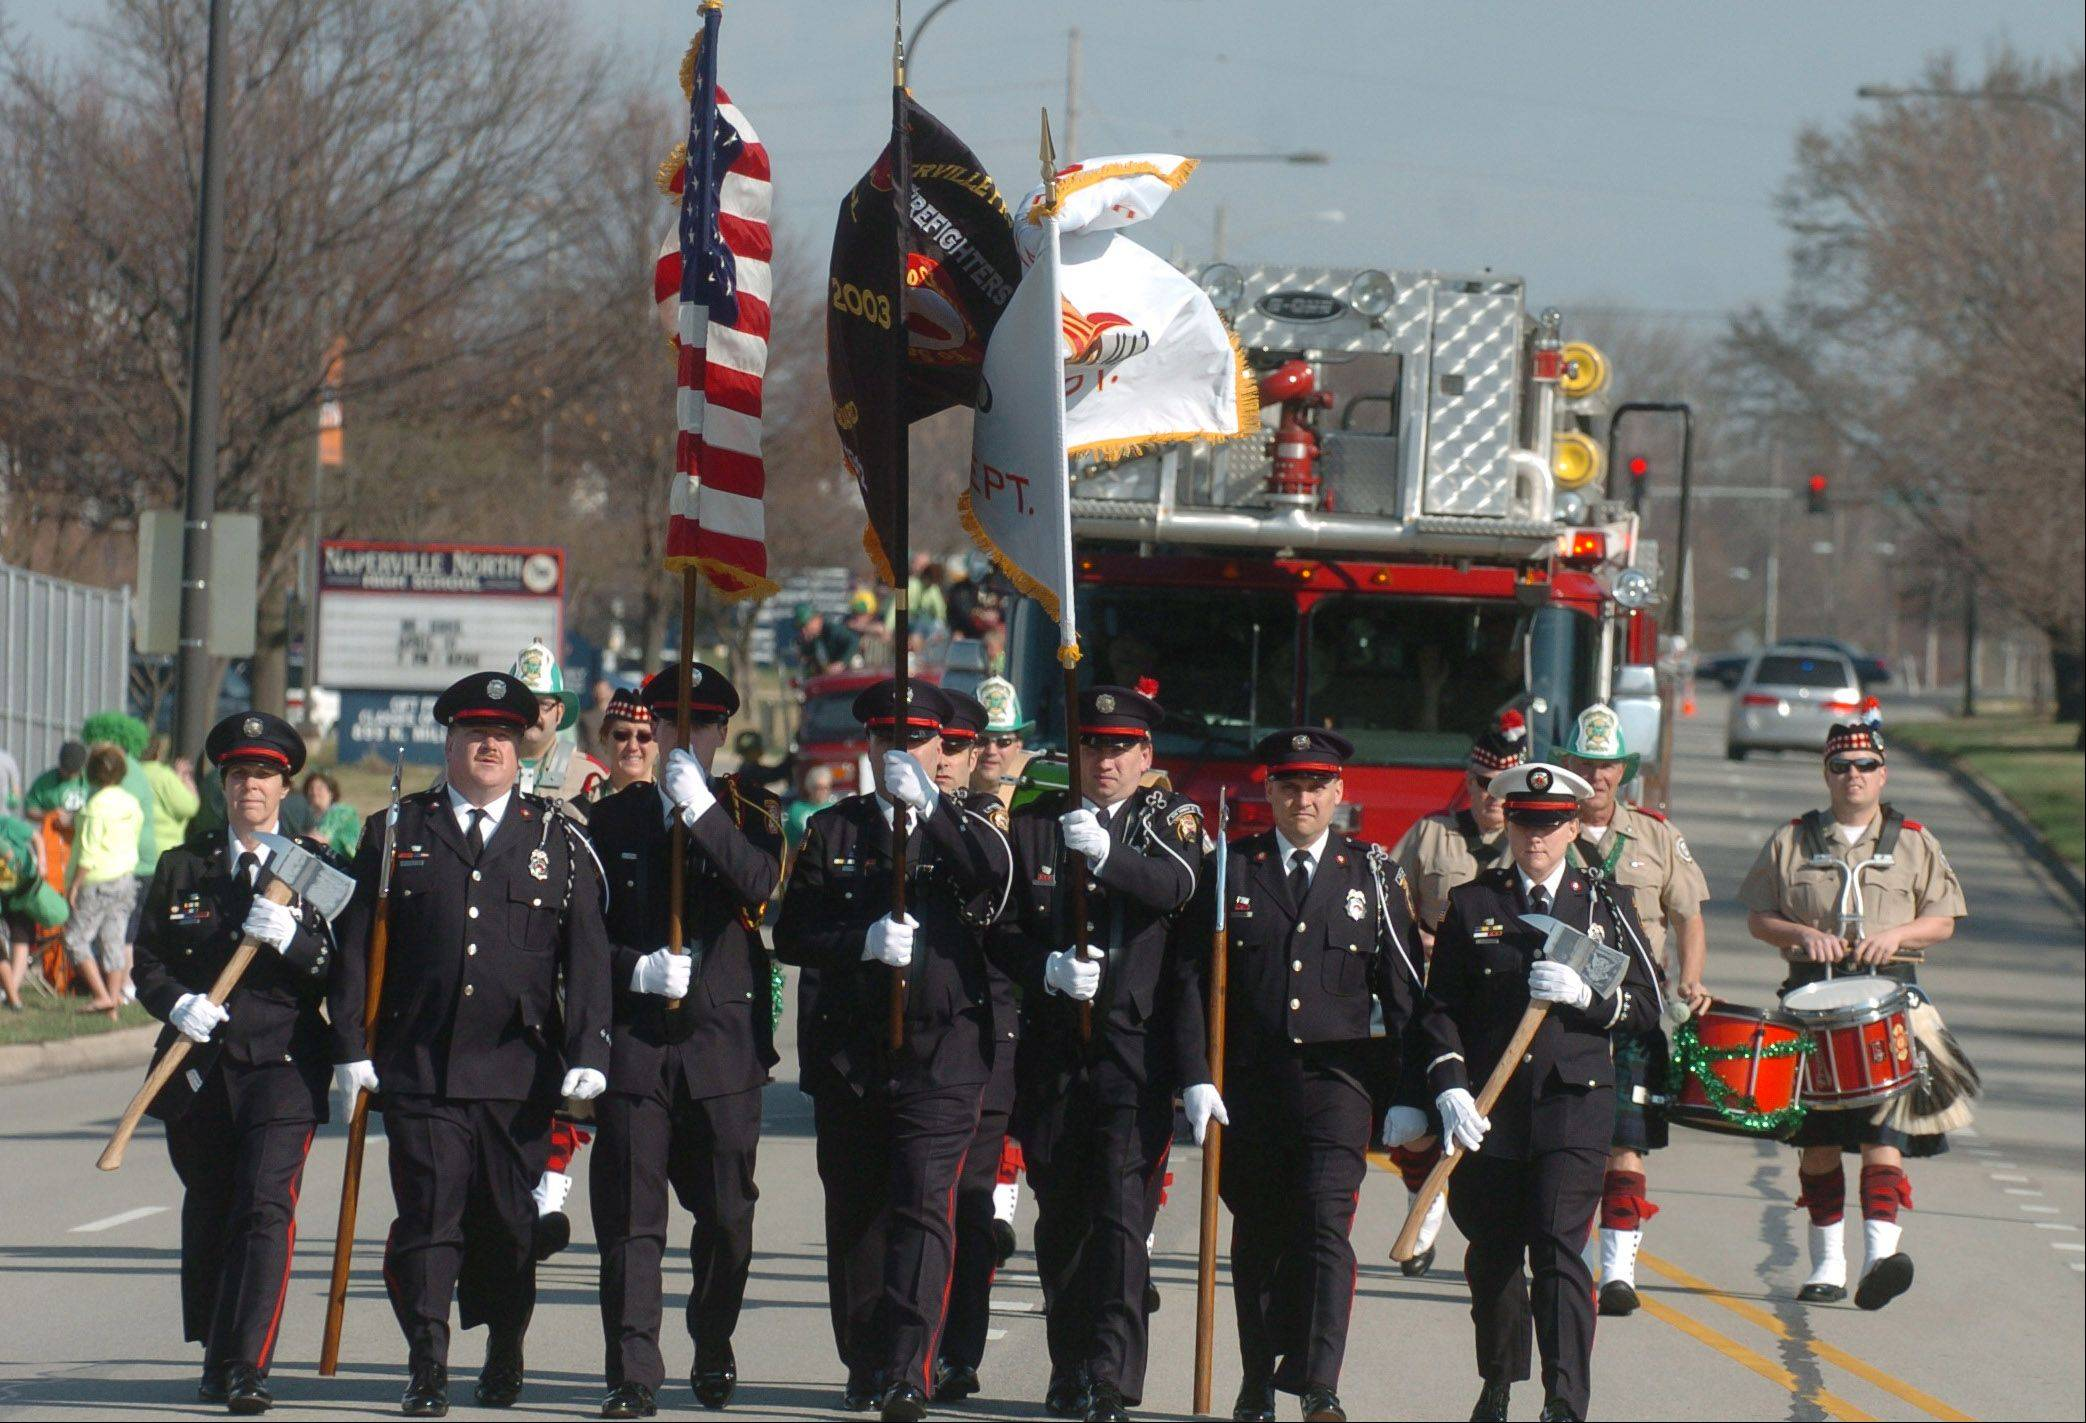 The St. Patricks Day parademakes its way down the streets of Naperville Saturday.